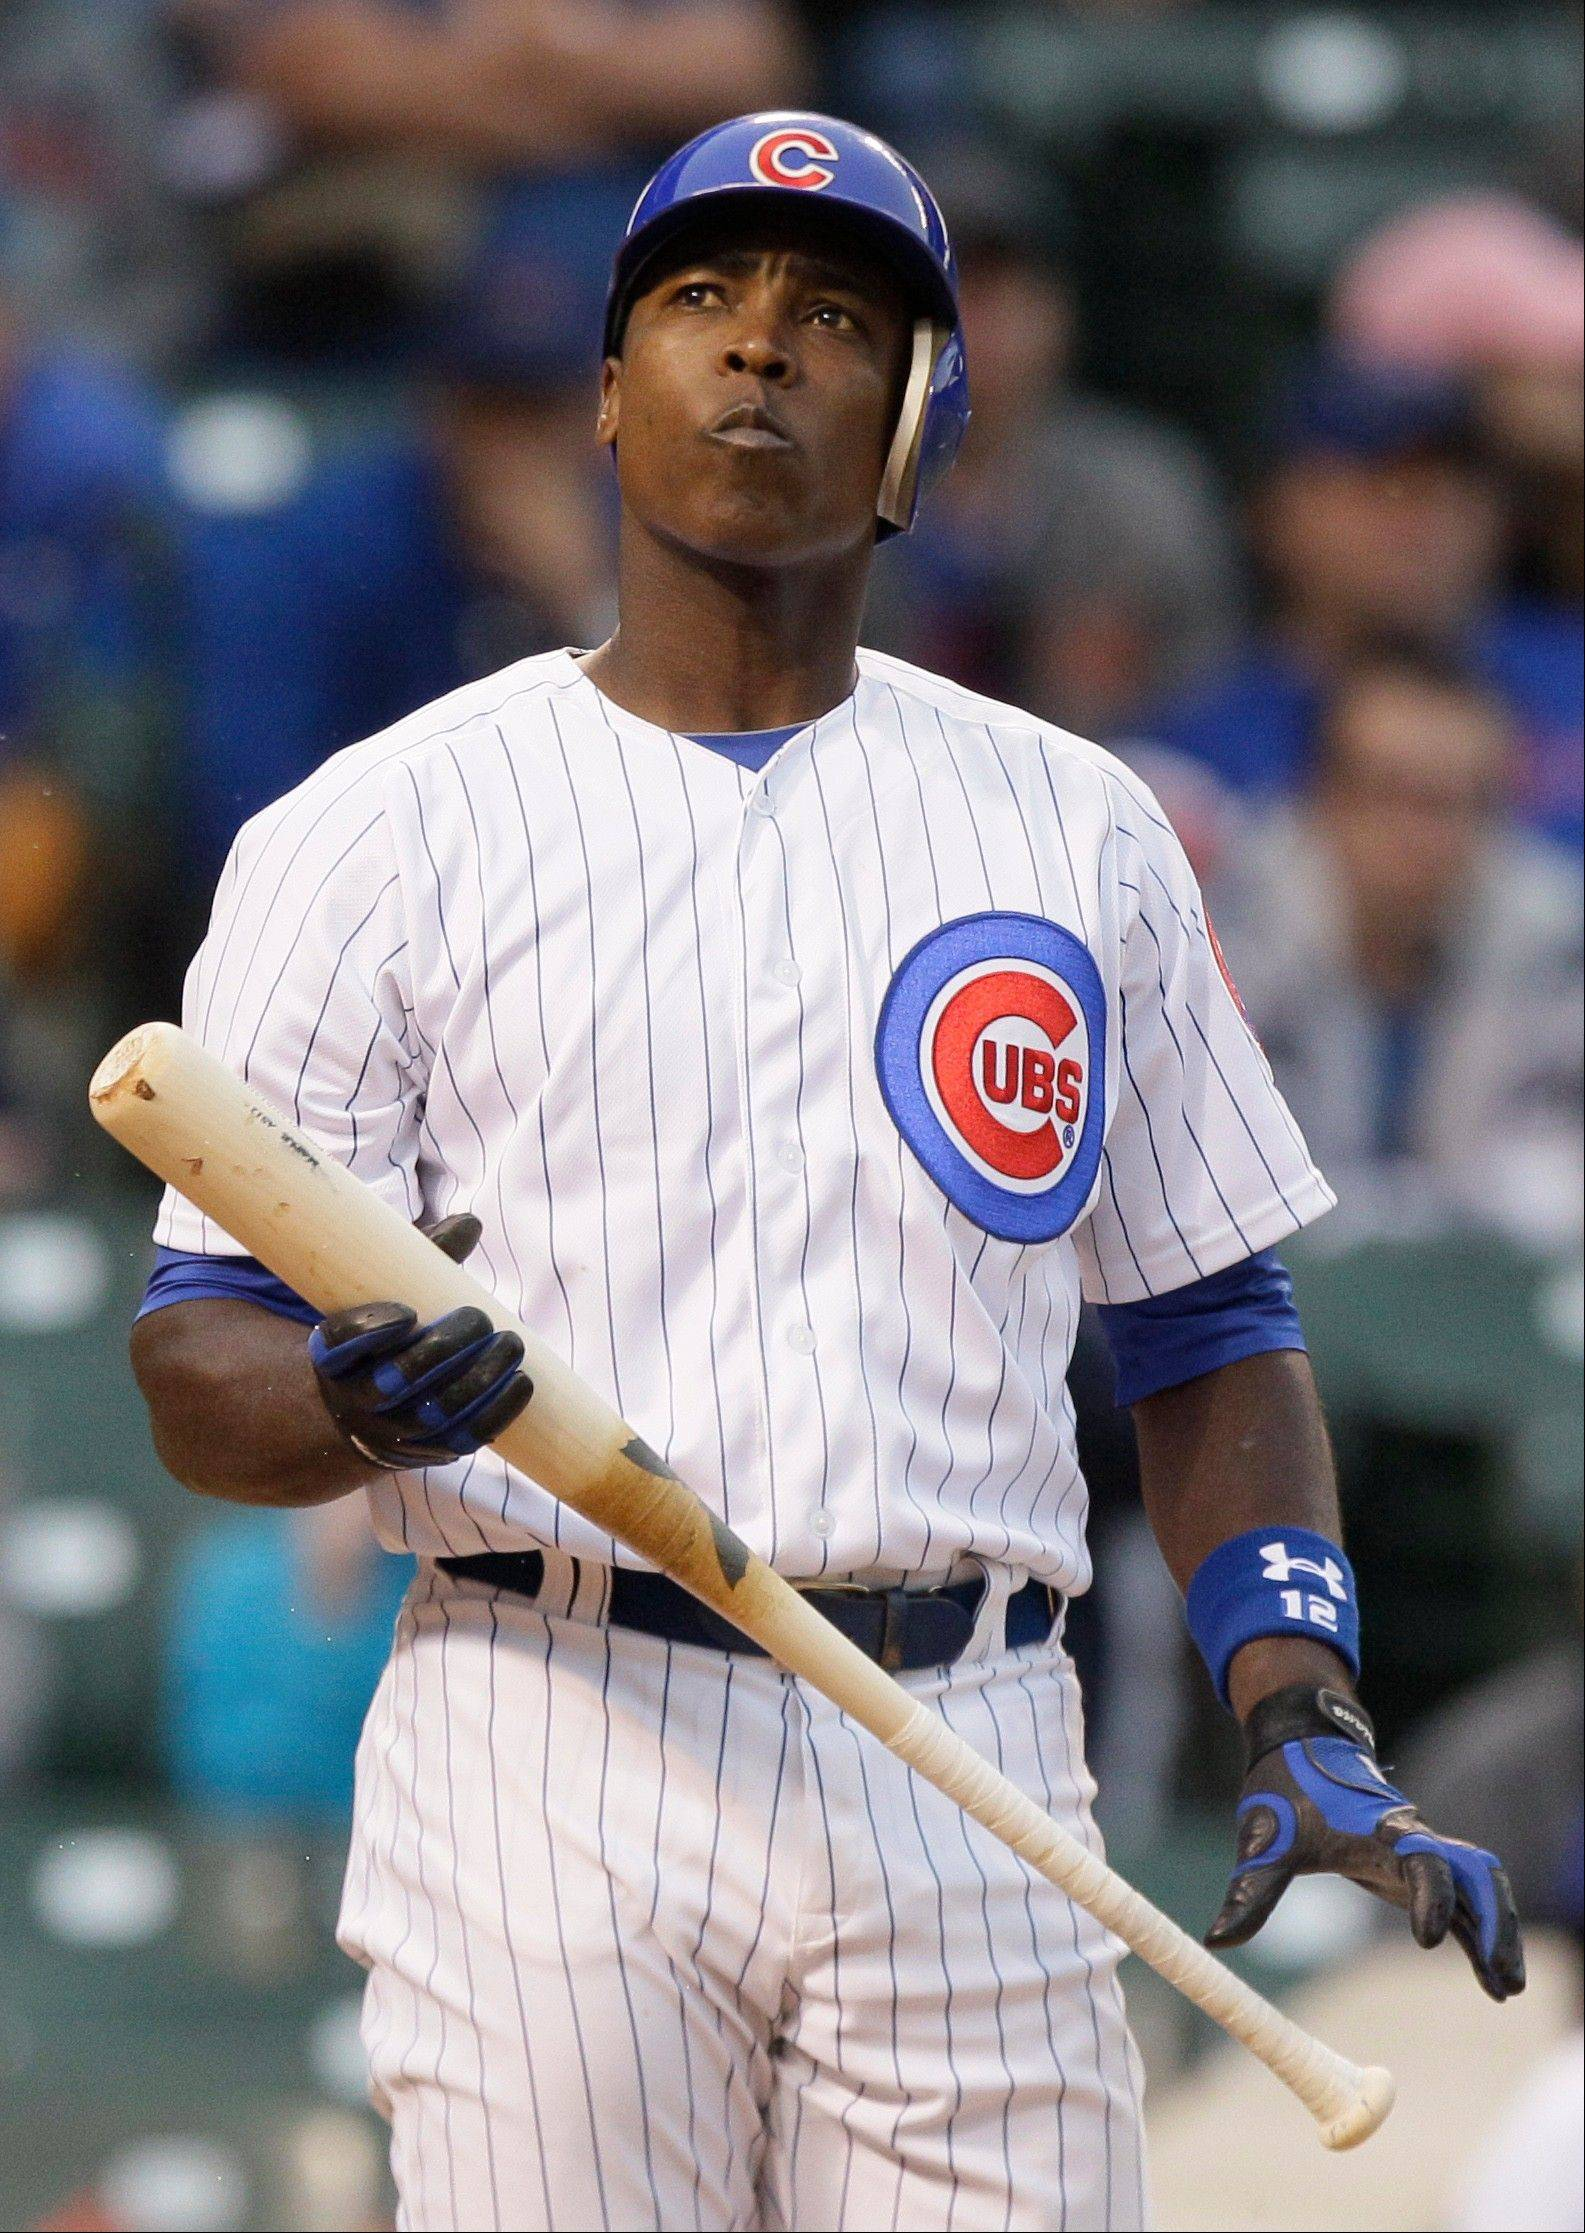 Cubs manager Dale Sveum was touting Alfonso Soriano for the all-star game earlier this month. Despite more than 100 chances, Soriano has not made an error this season, which is tops among NL left fielders.